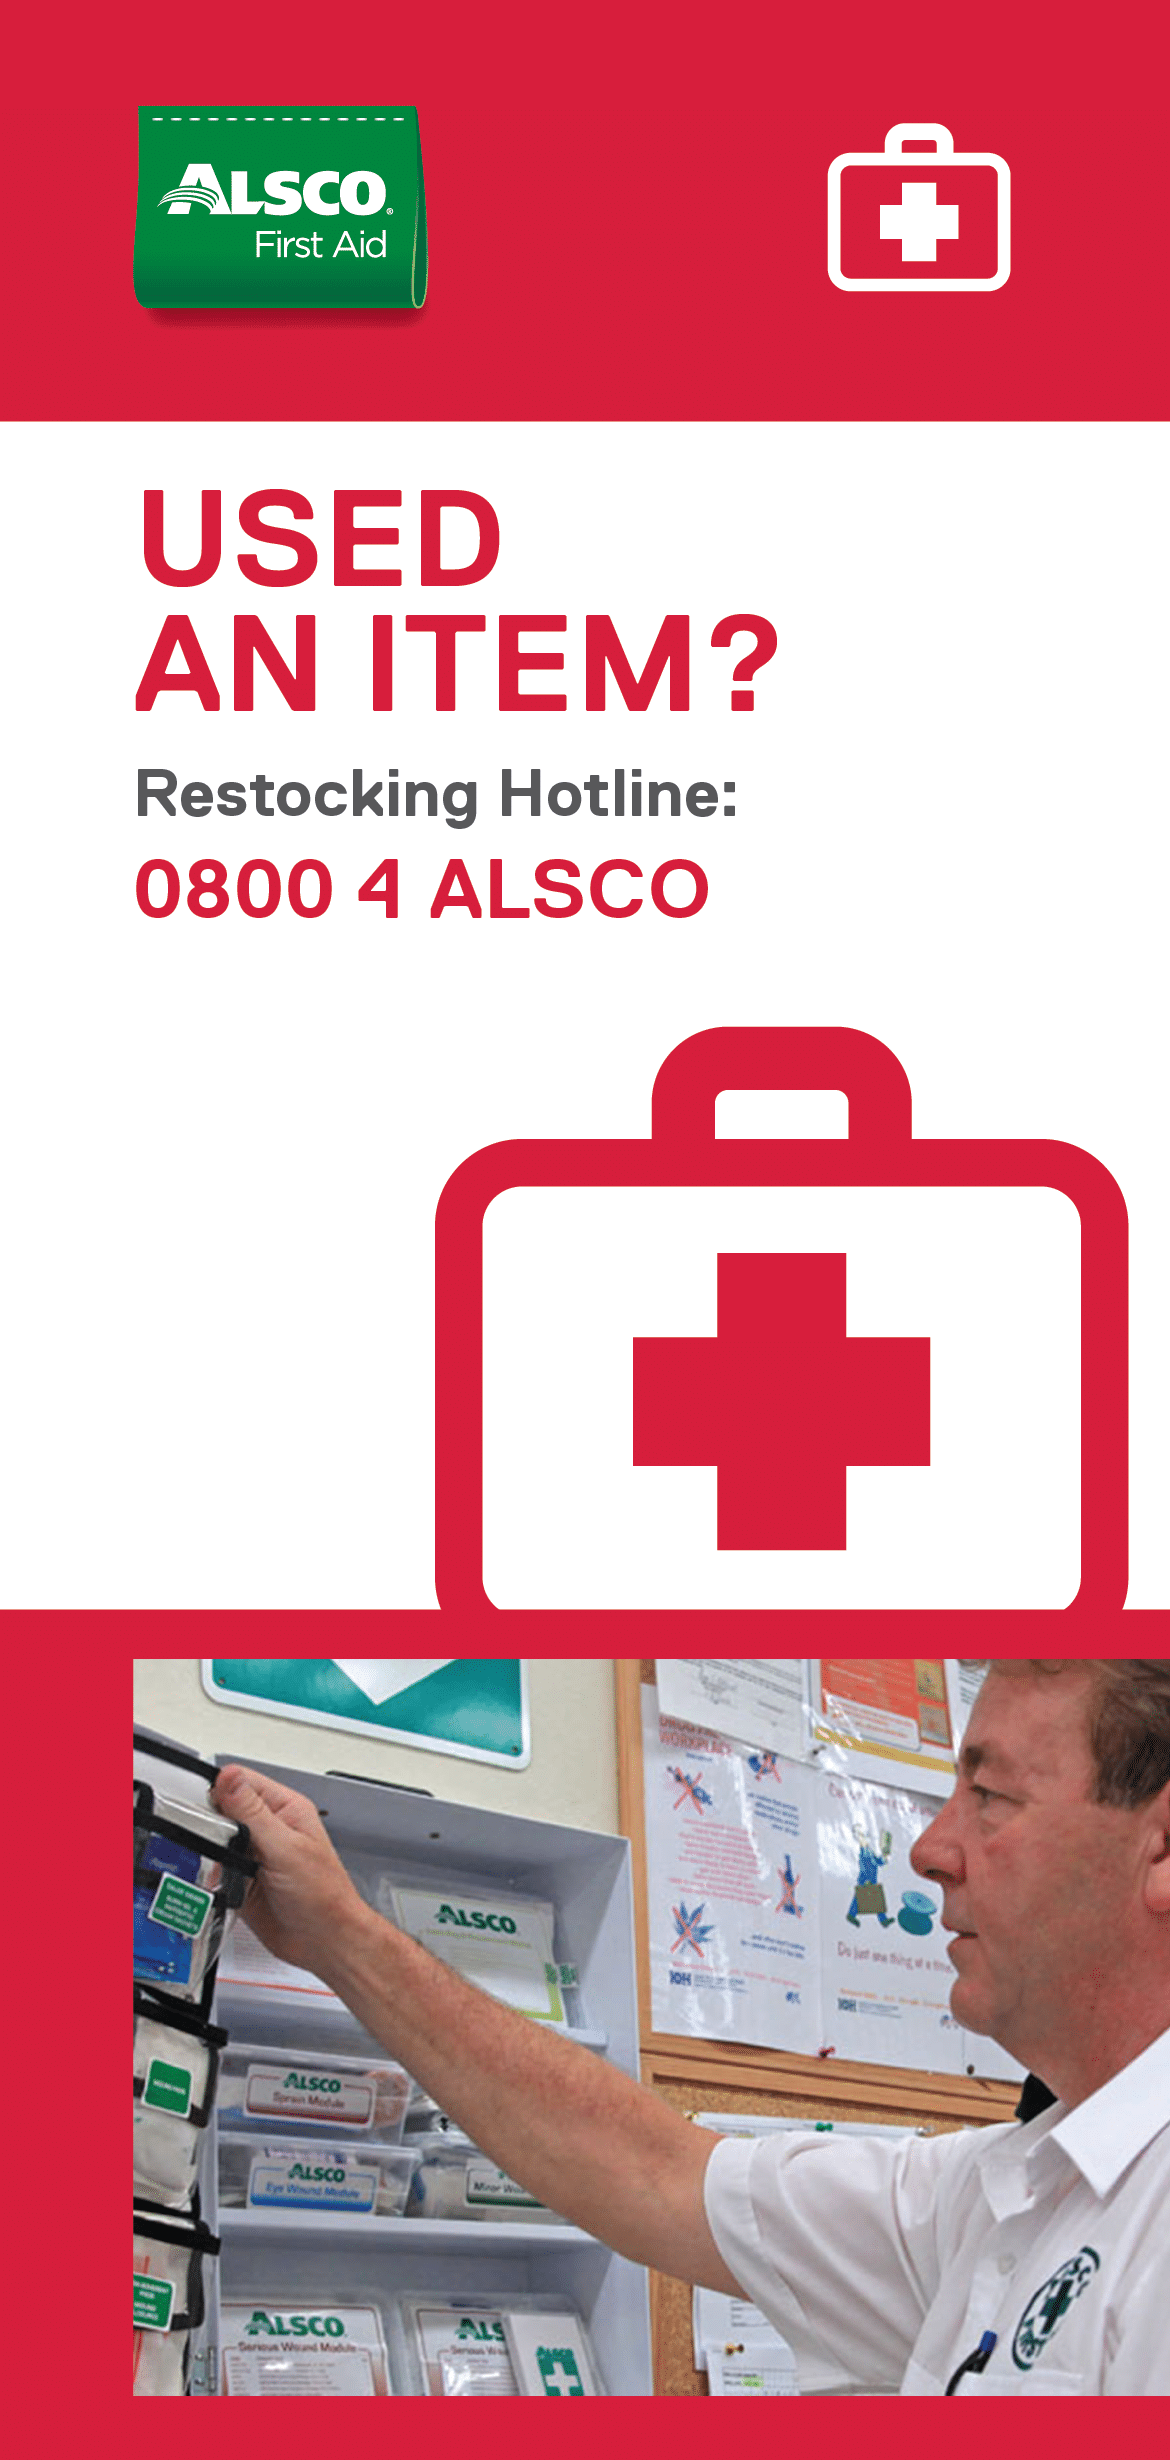 First Aid Restocking Sign Posters - Alsco New Zealand